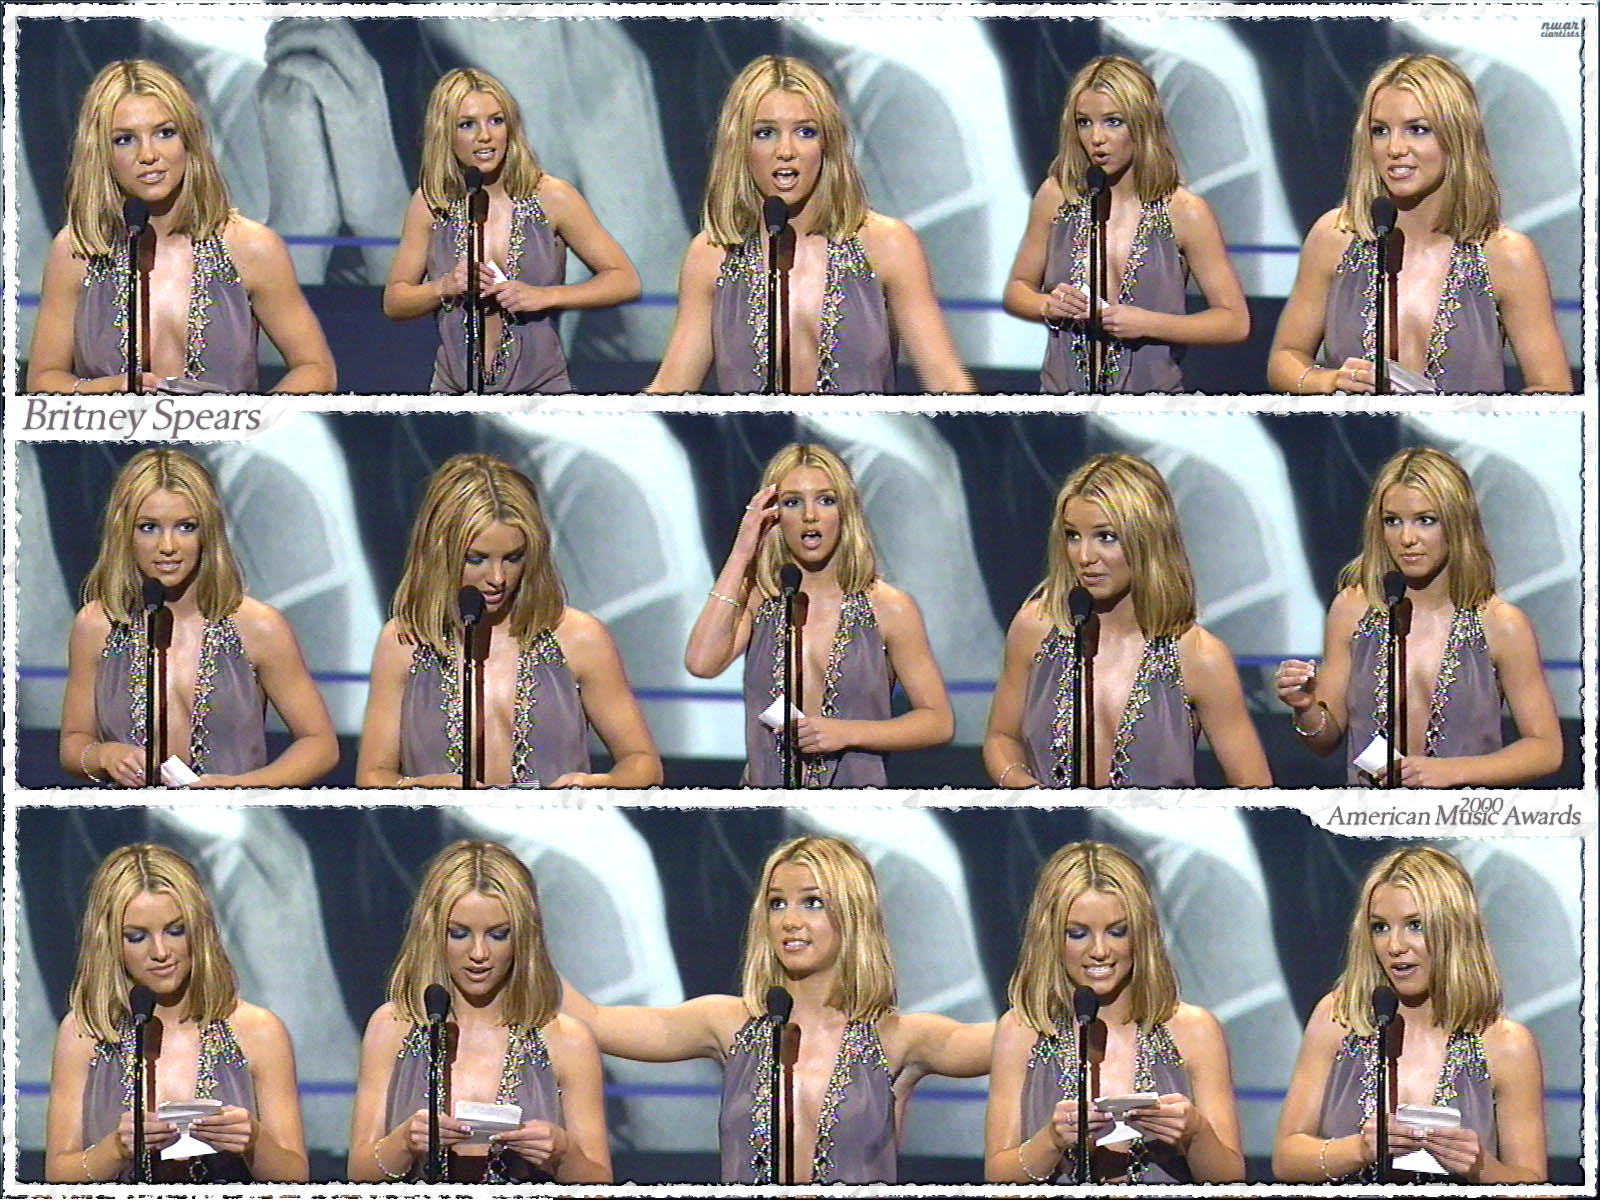 50185_Britney_Spears_-_The_Dress_-_Compilation_-_133_122_1189lo.Jpg